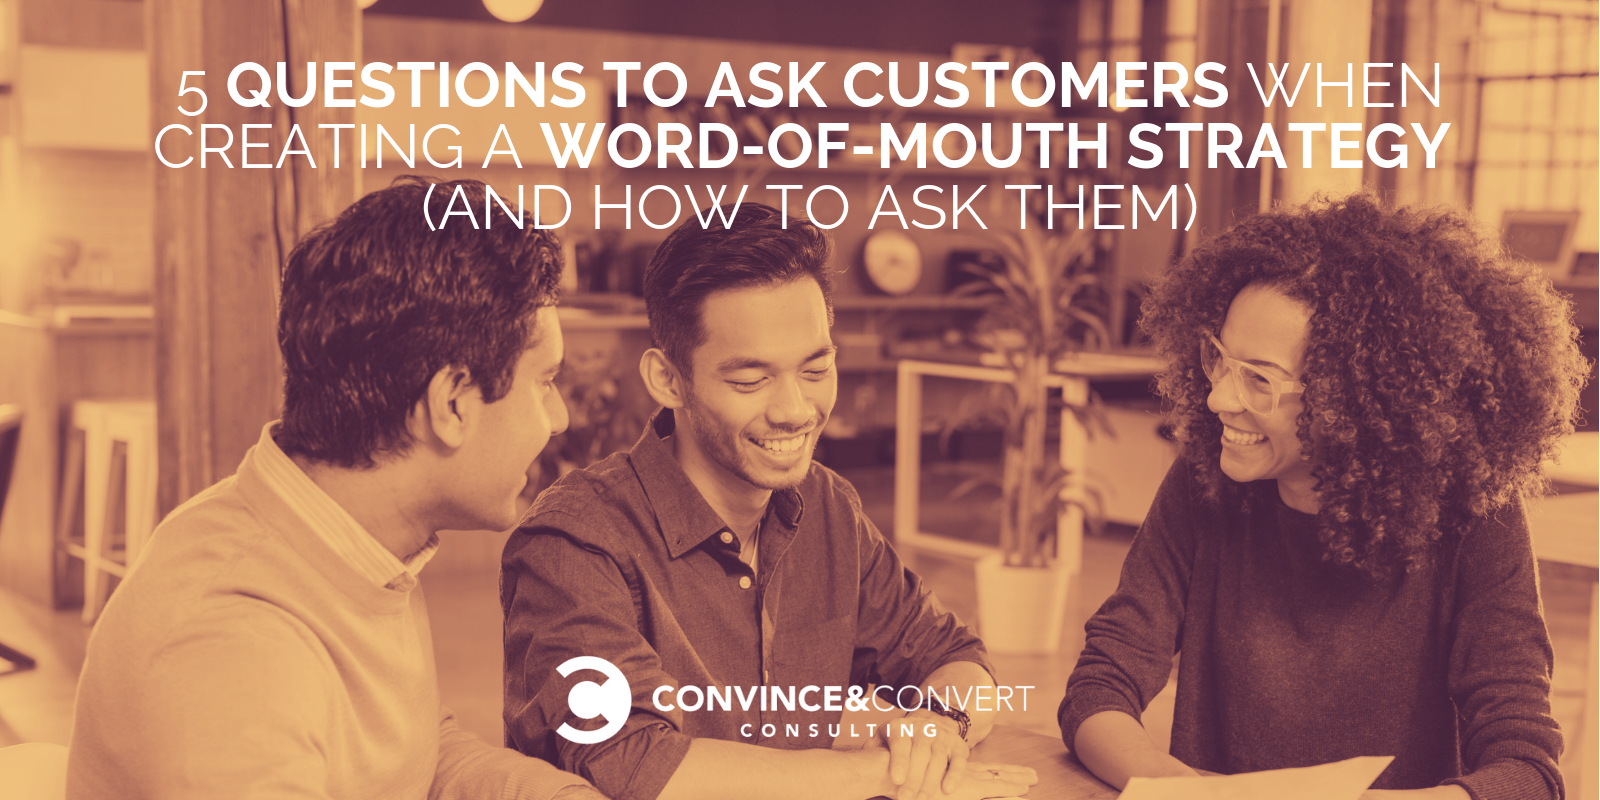 Flipboard 5 Questions To Ask Customers When Creating A Word Of Mouth Strategy And How To Ask Them